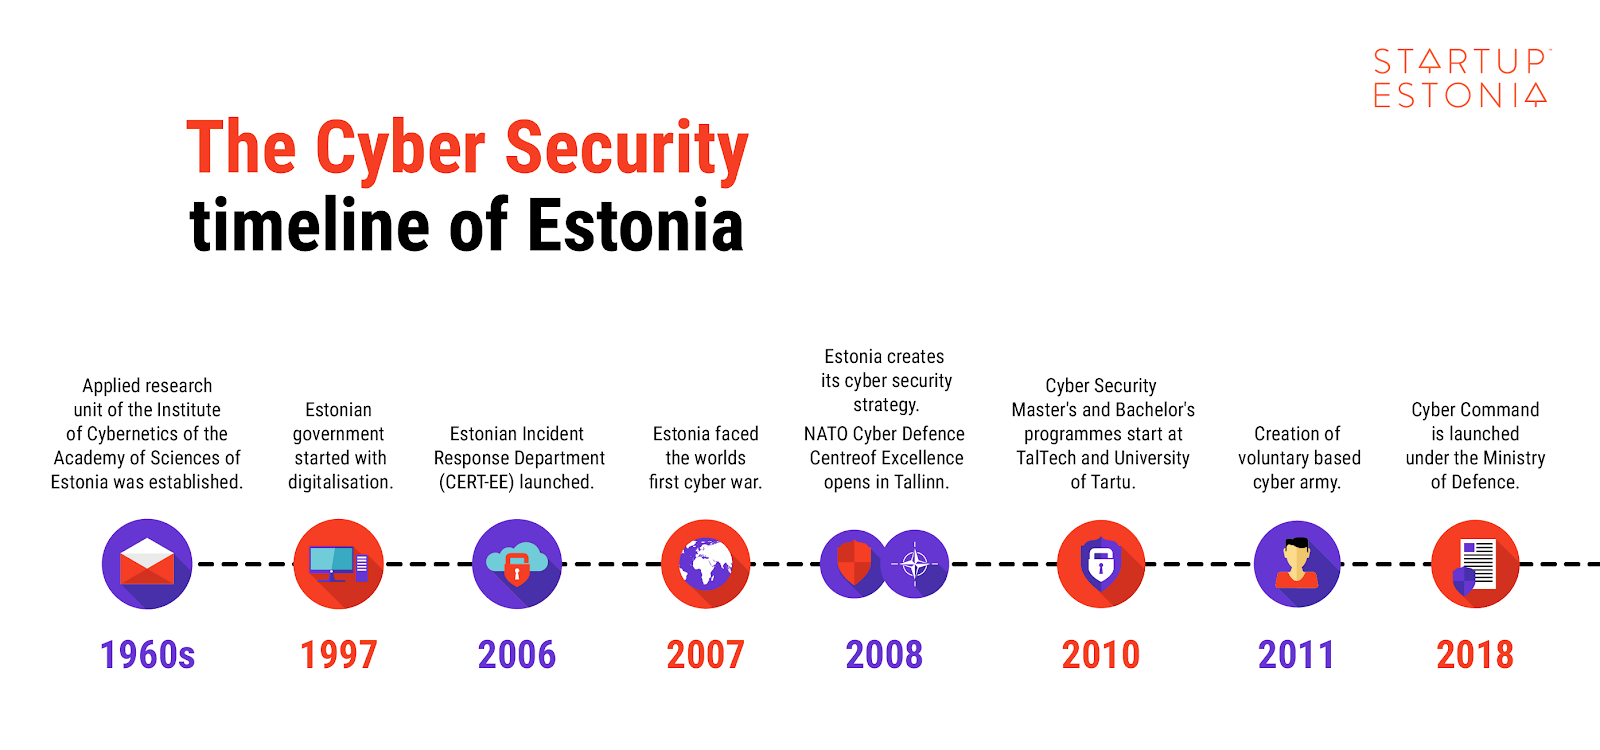 The Cyber Security timeline of